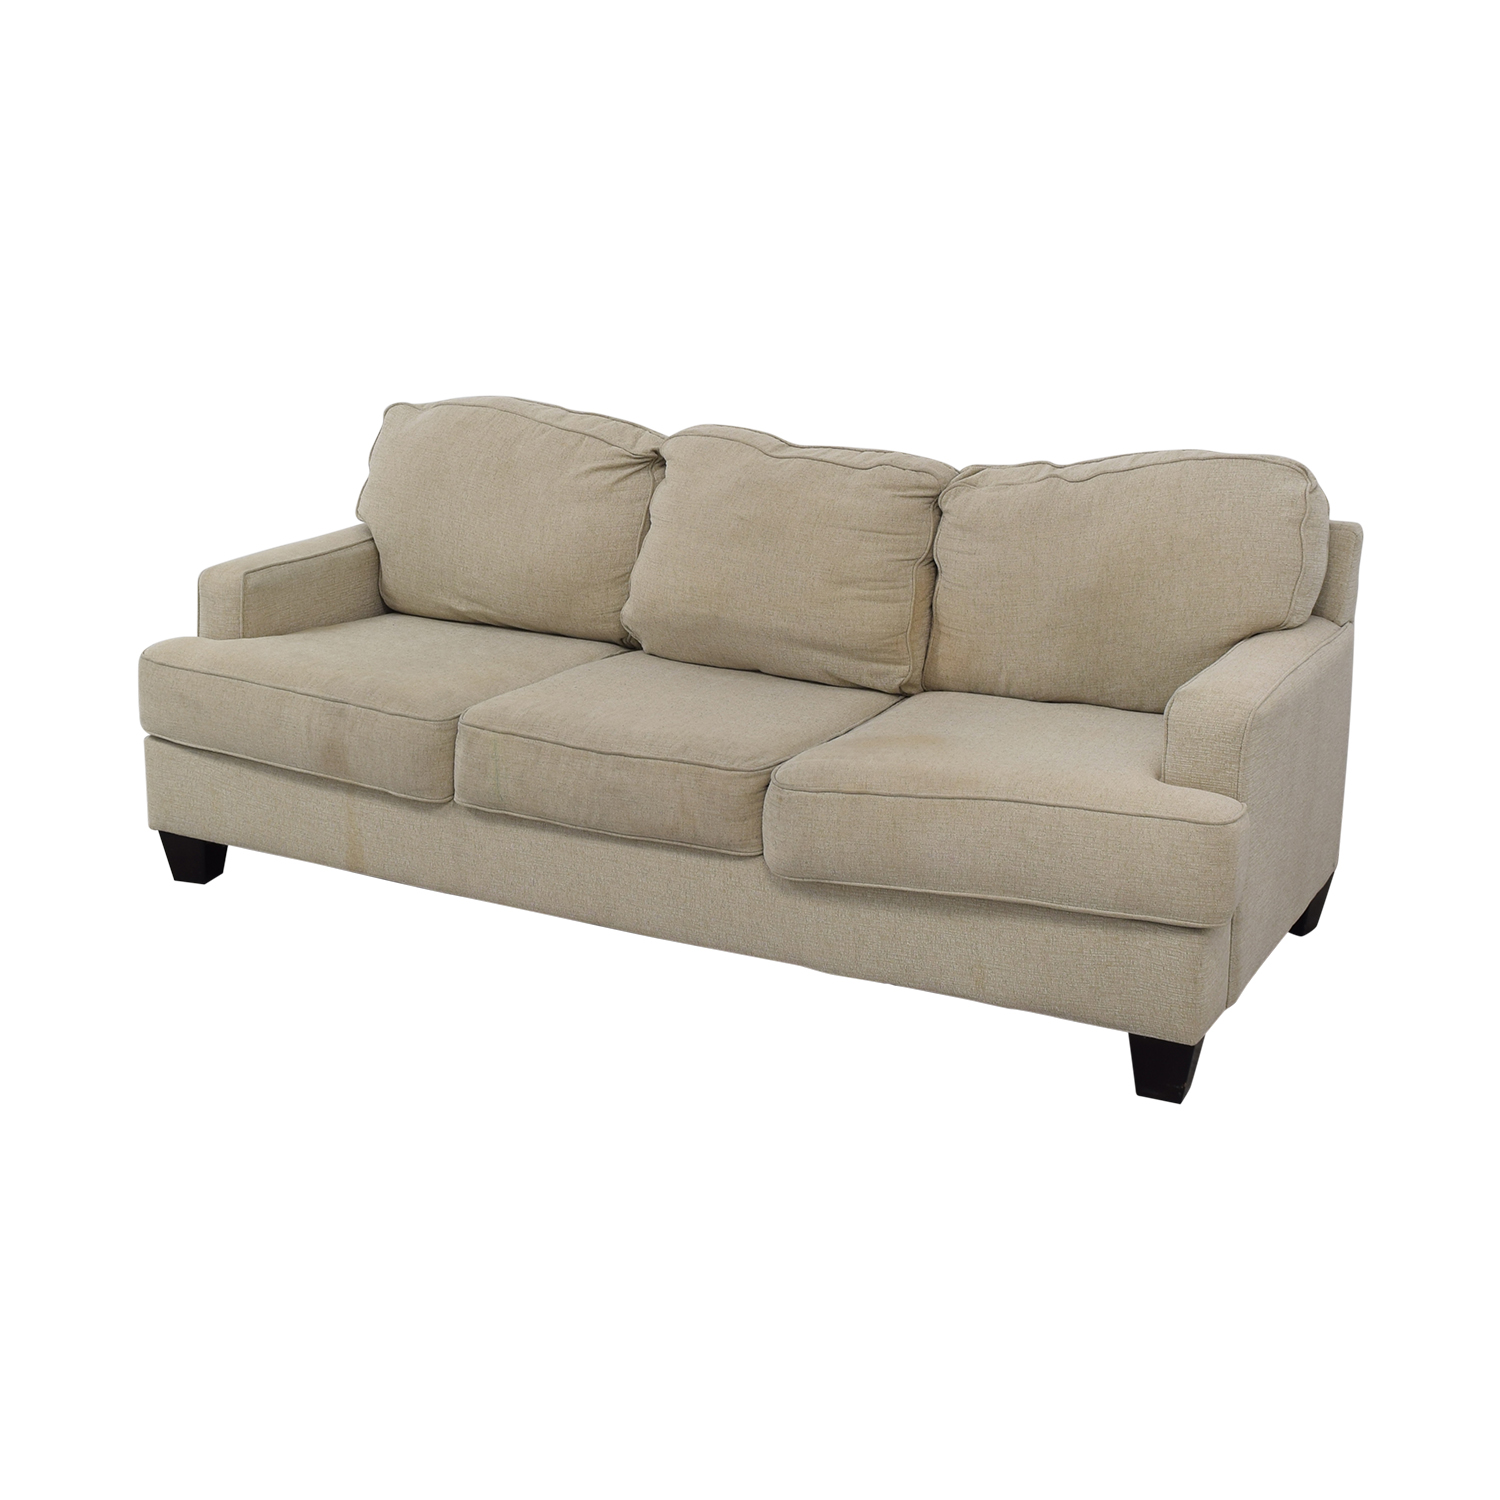 Ashley Furniture Ashley Furniture Sofa